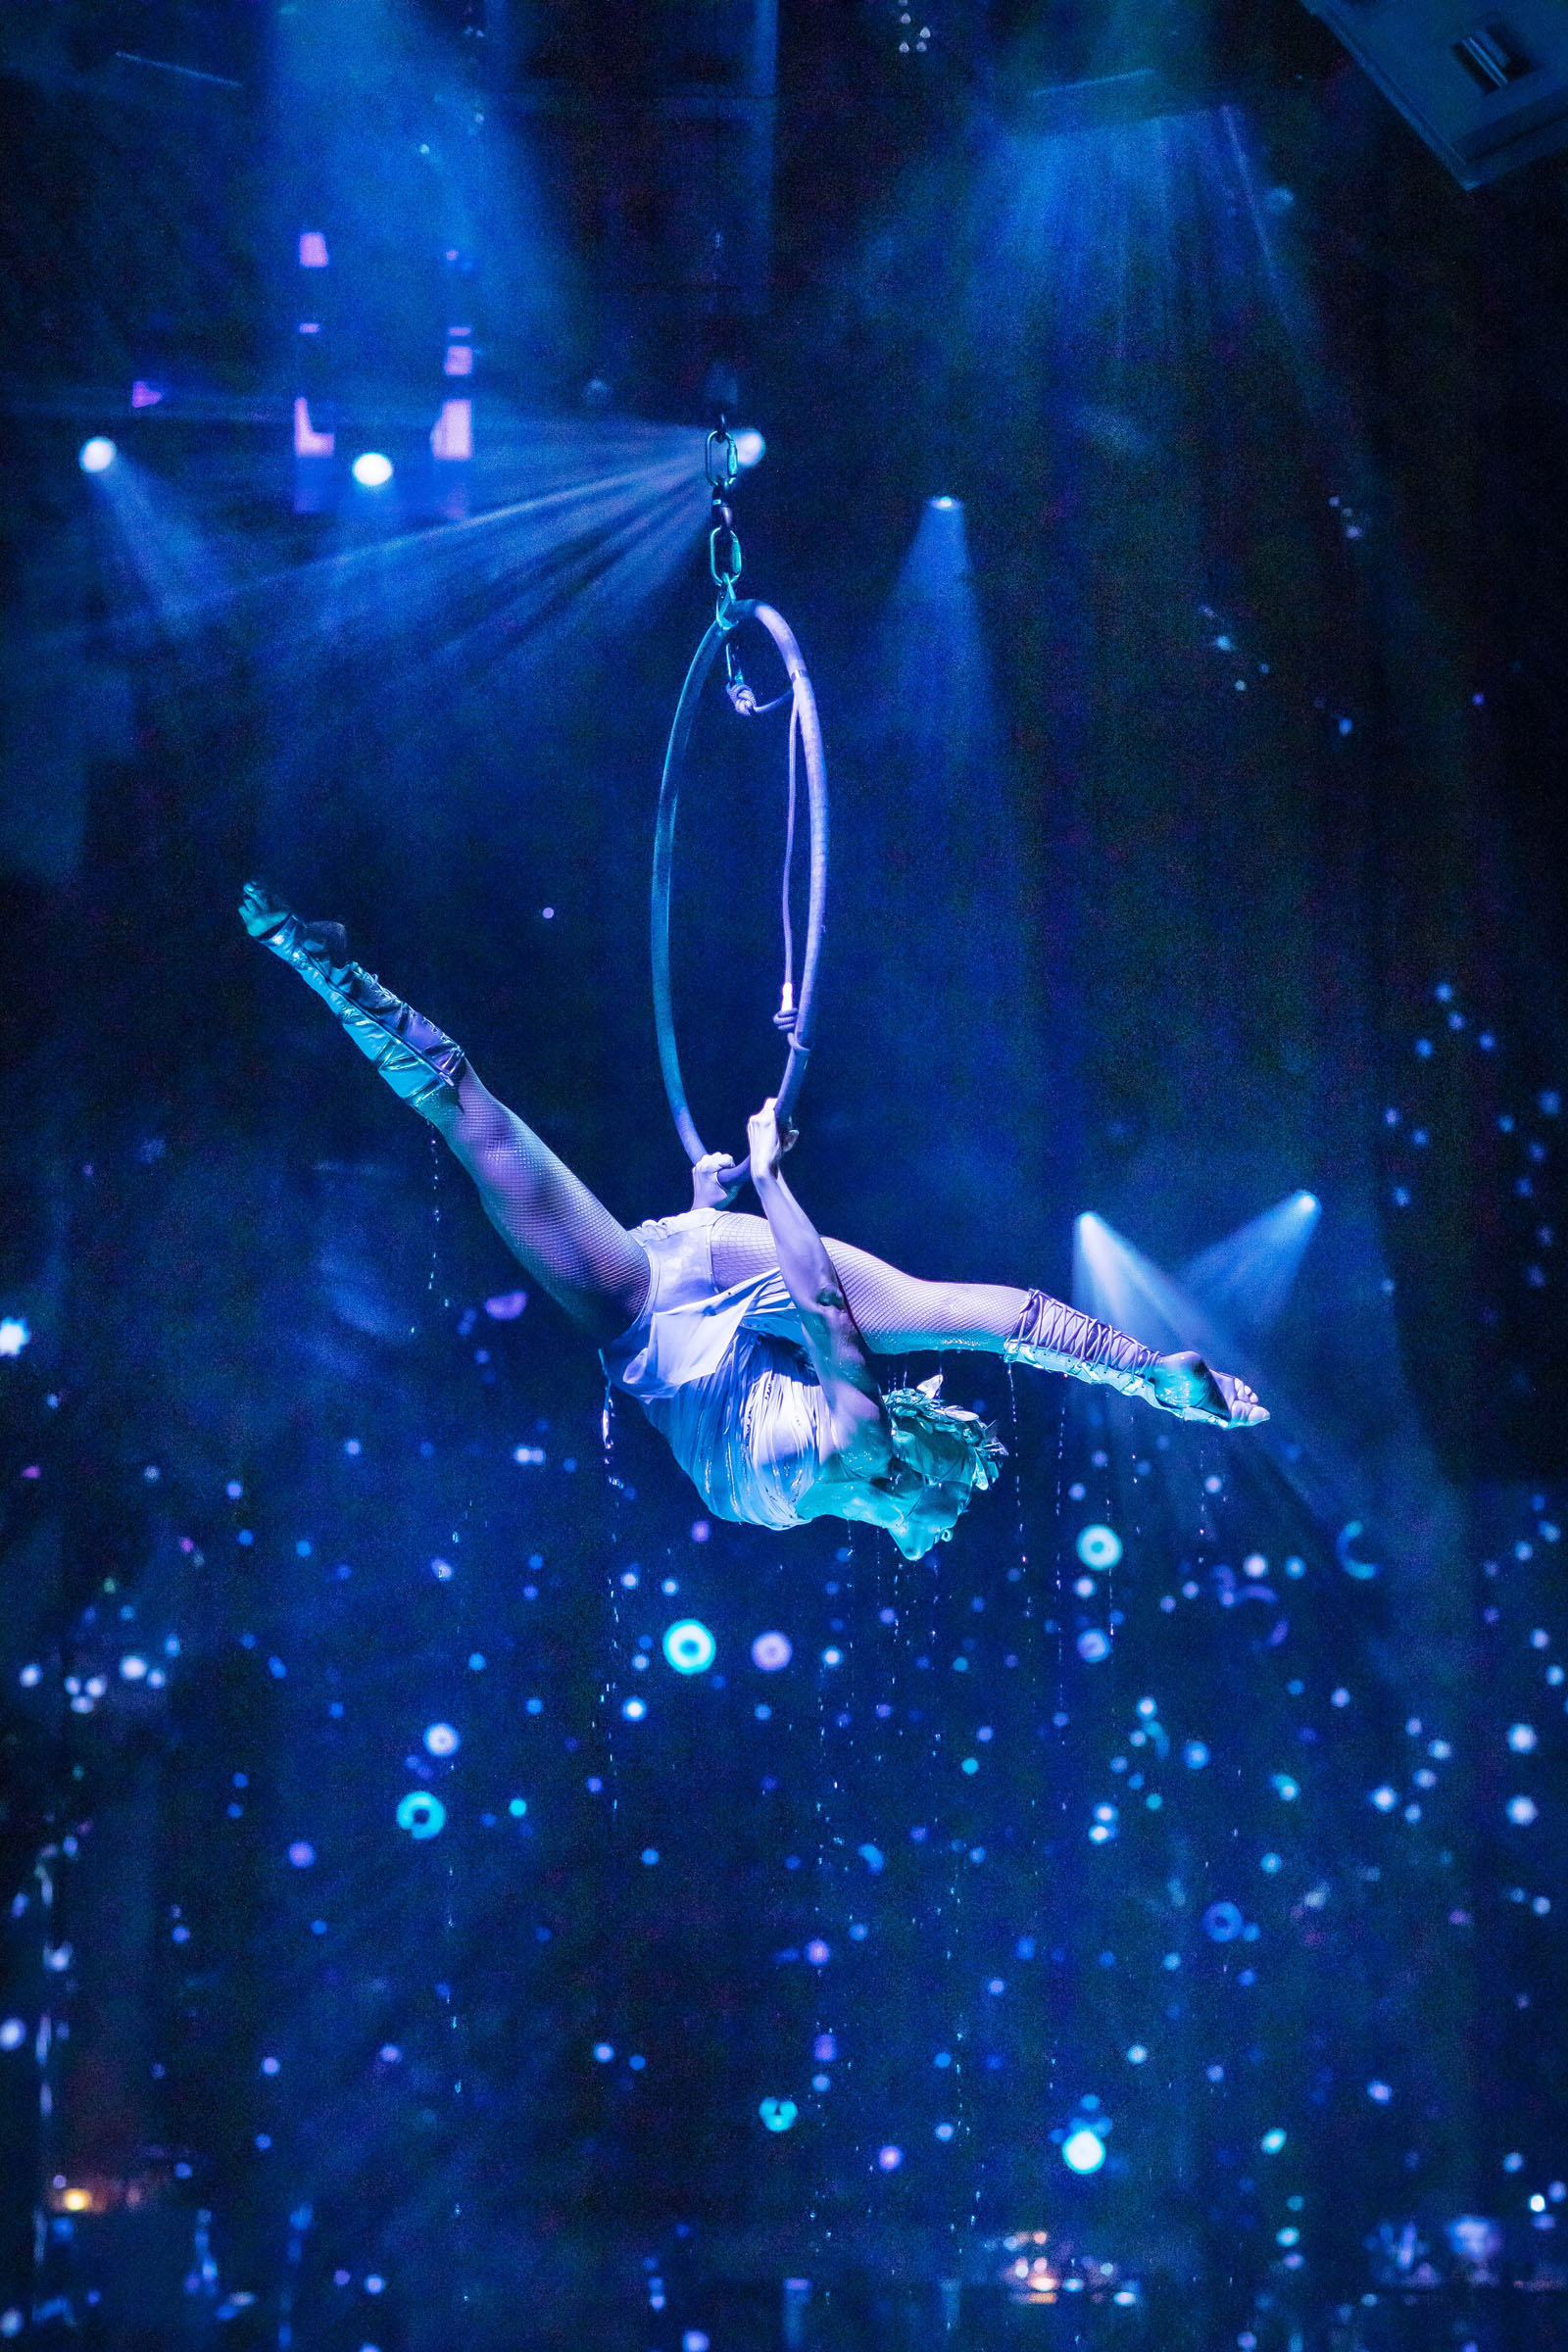 Elin Andersson (Bella) on the Trapeze at 'Mamma Mia! The Party'